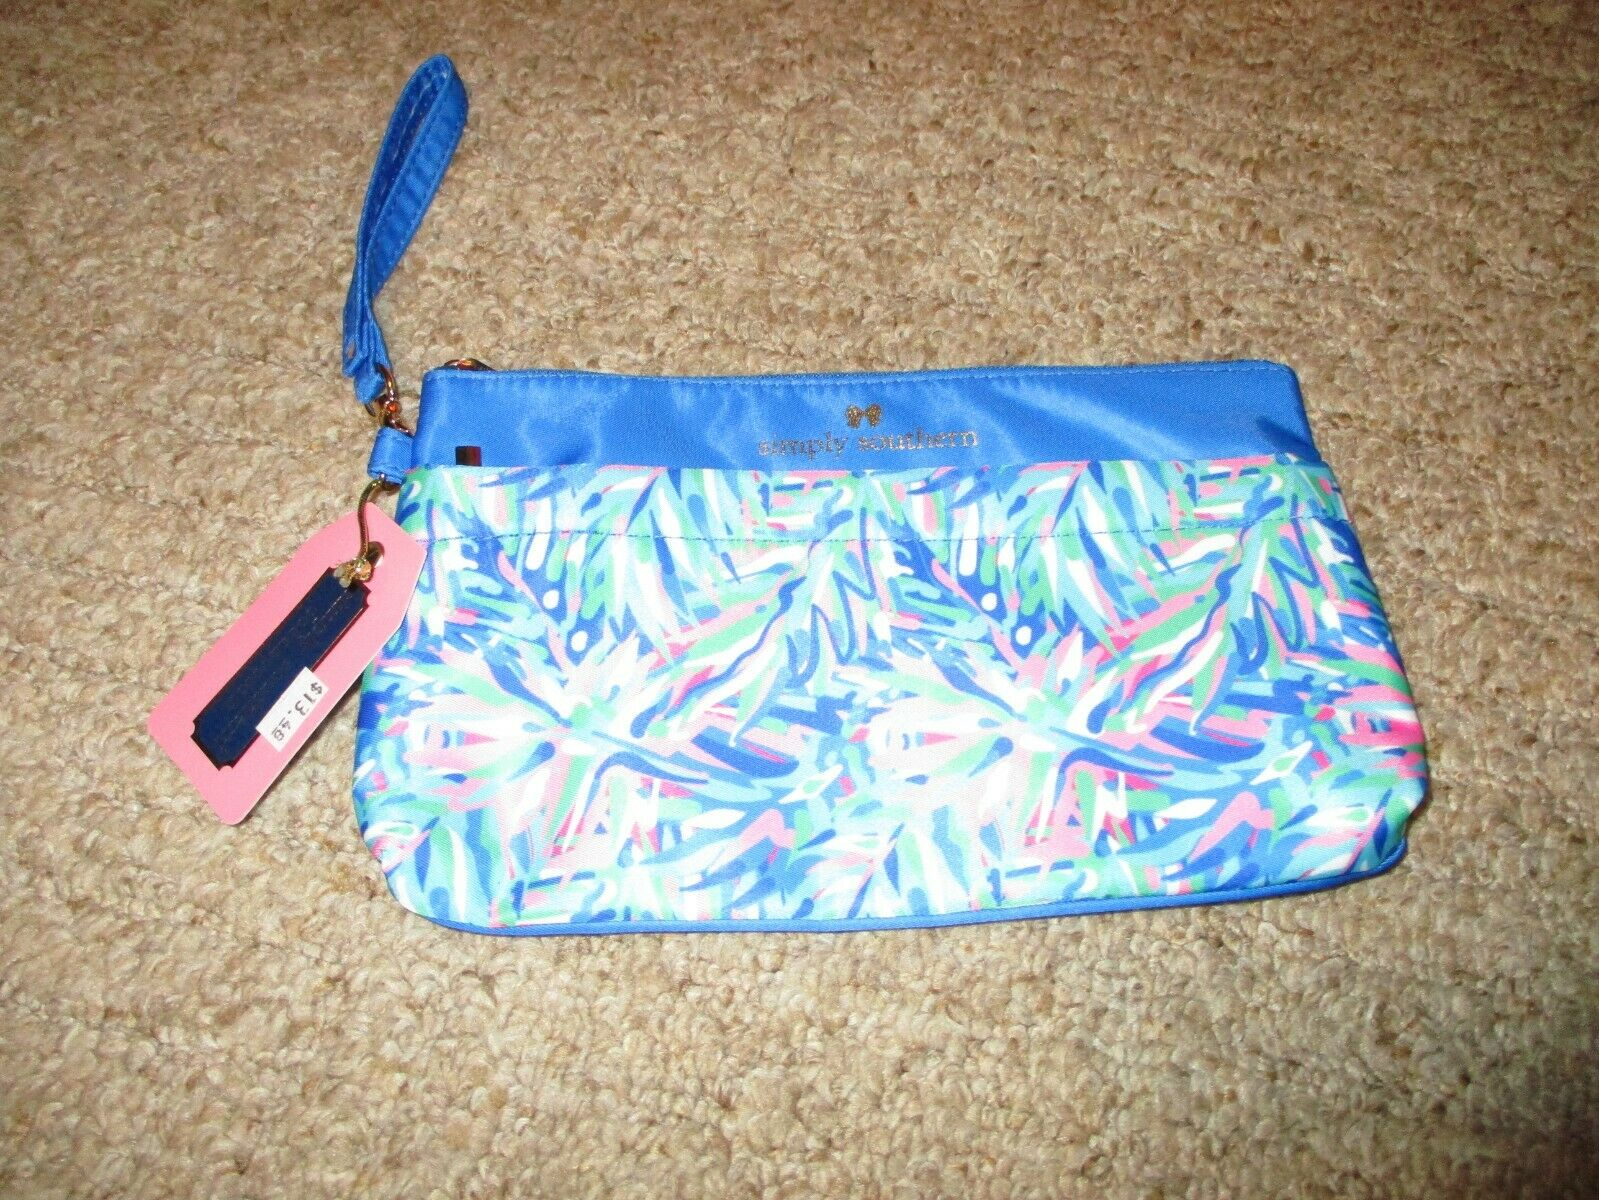 NEW NWT Simply Southern Wrist-let Wallet 2 ZIPPERS 6 POUCHES Phone Case 9.5 X 6